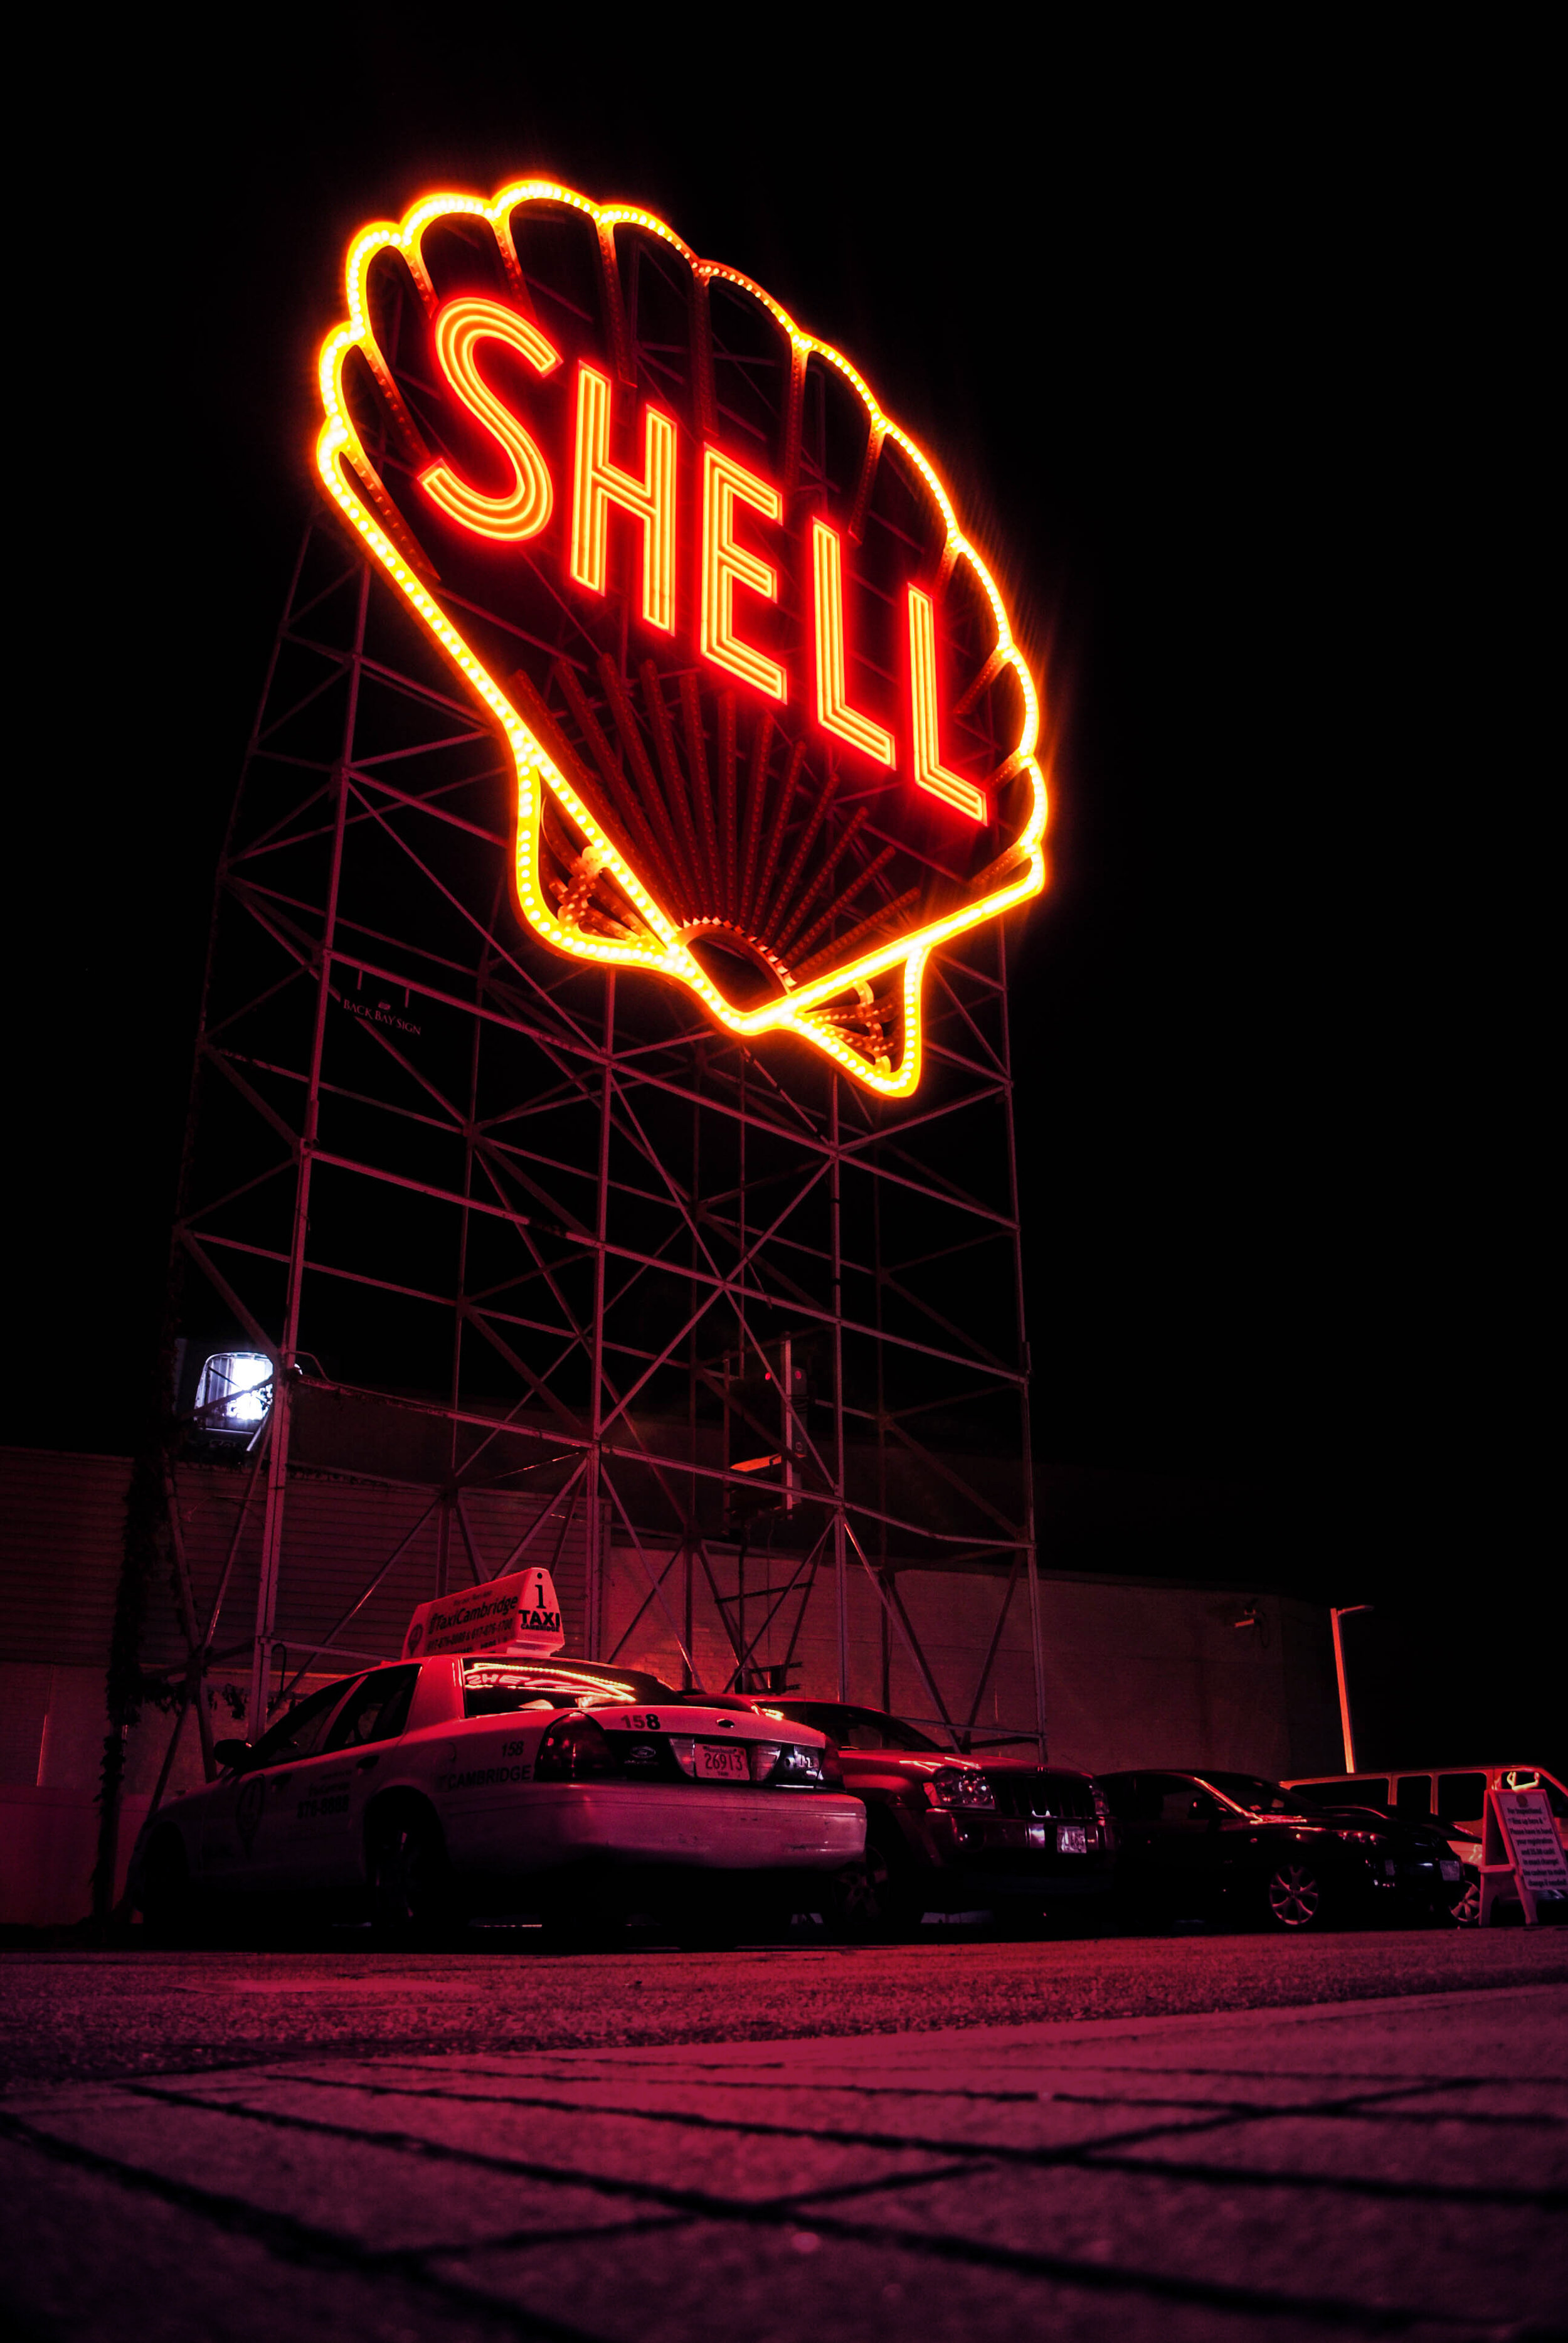 Shell set to double investment in green energy -